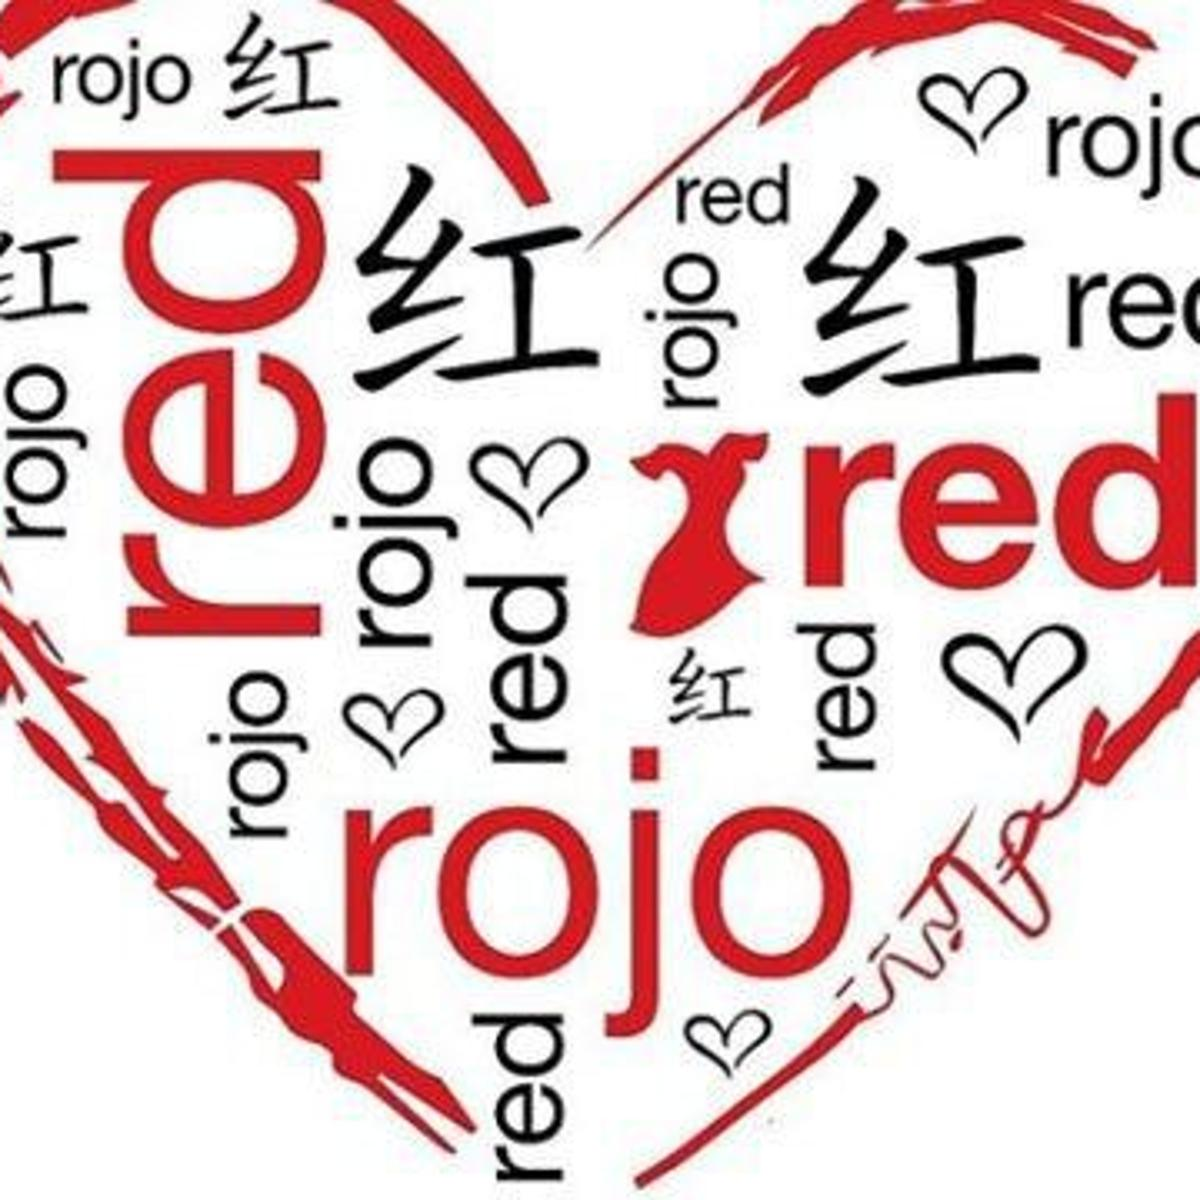 Friday is Wear Red Day to raise awareness for heart disease.